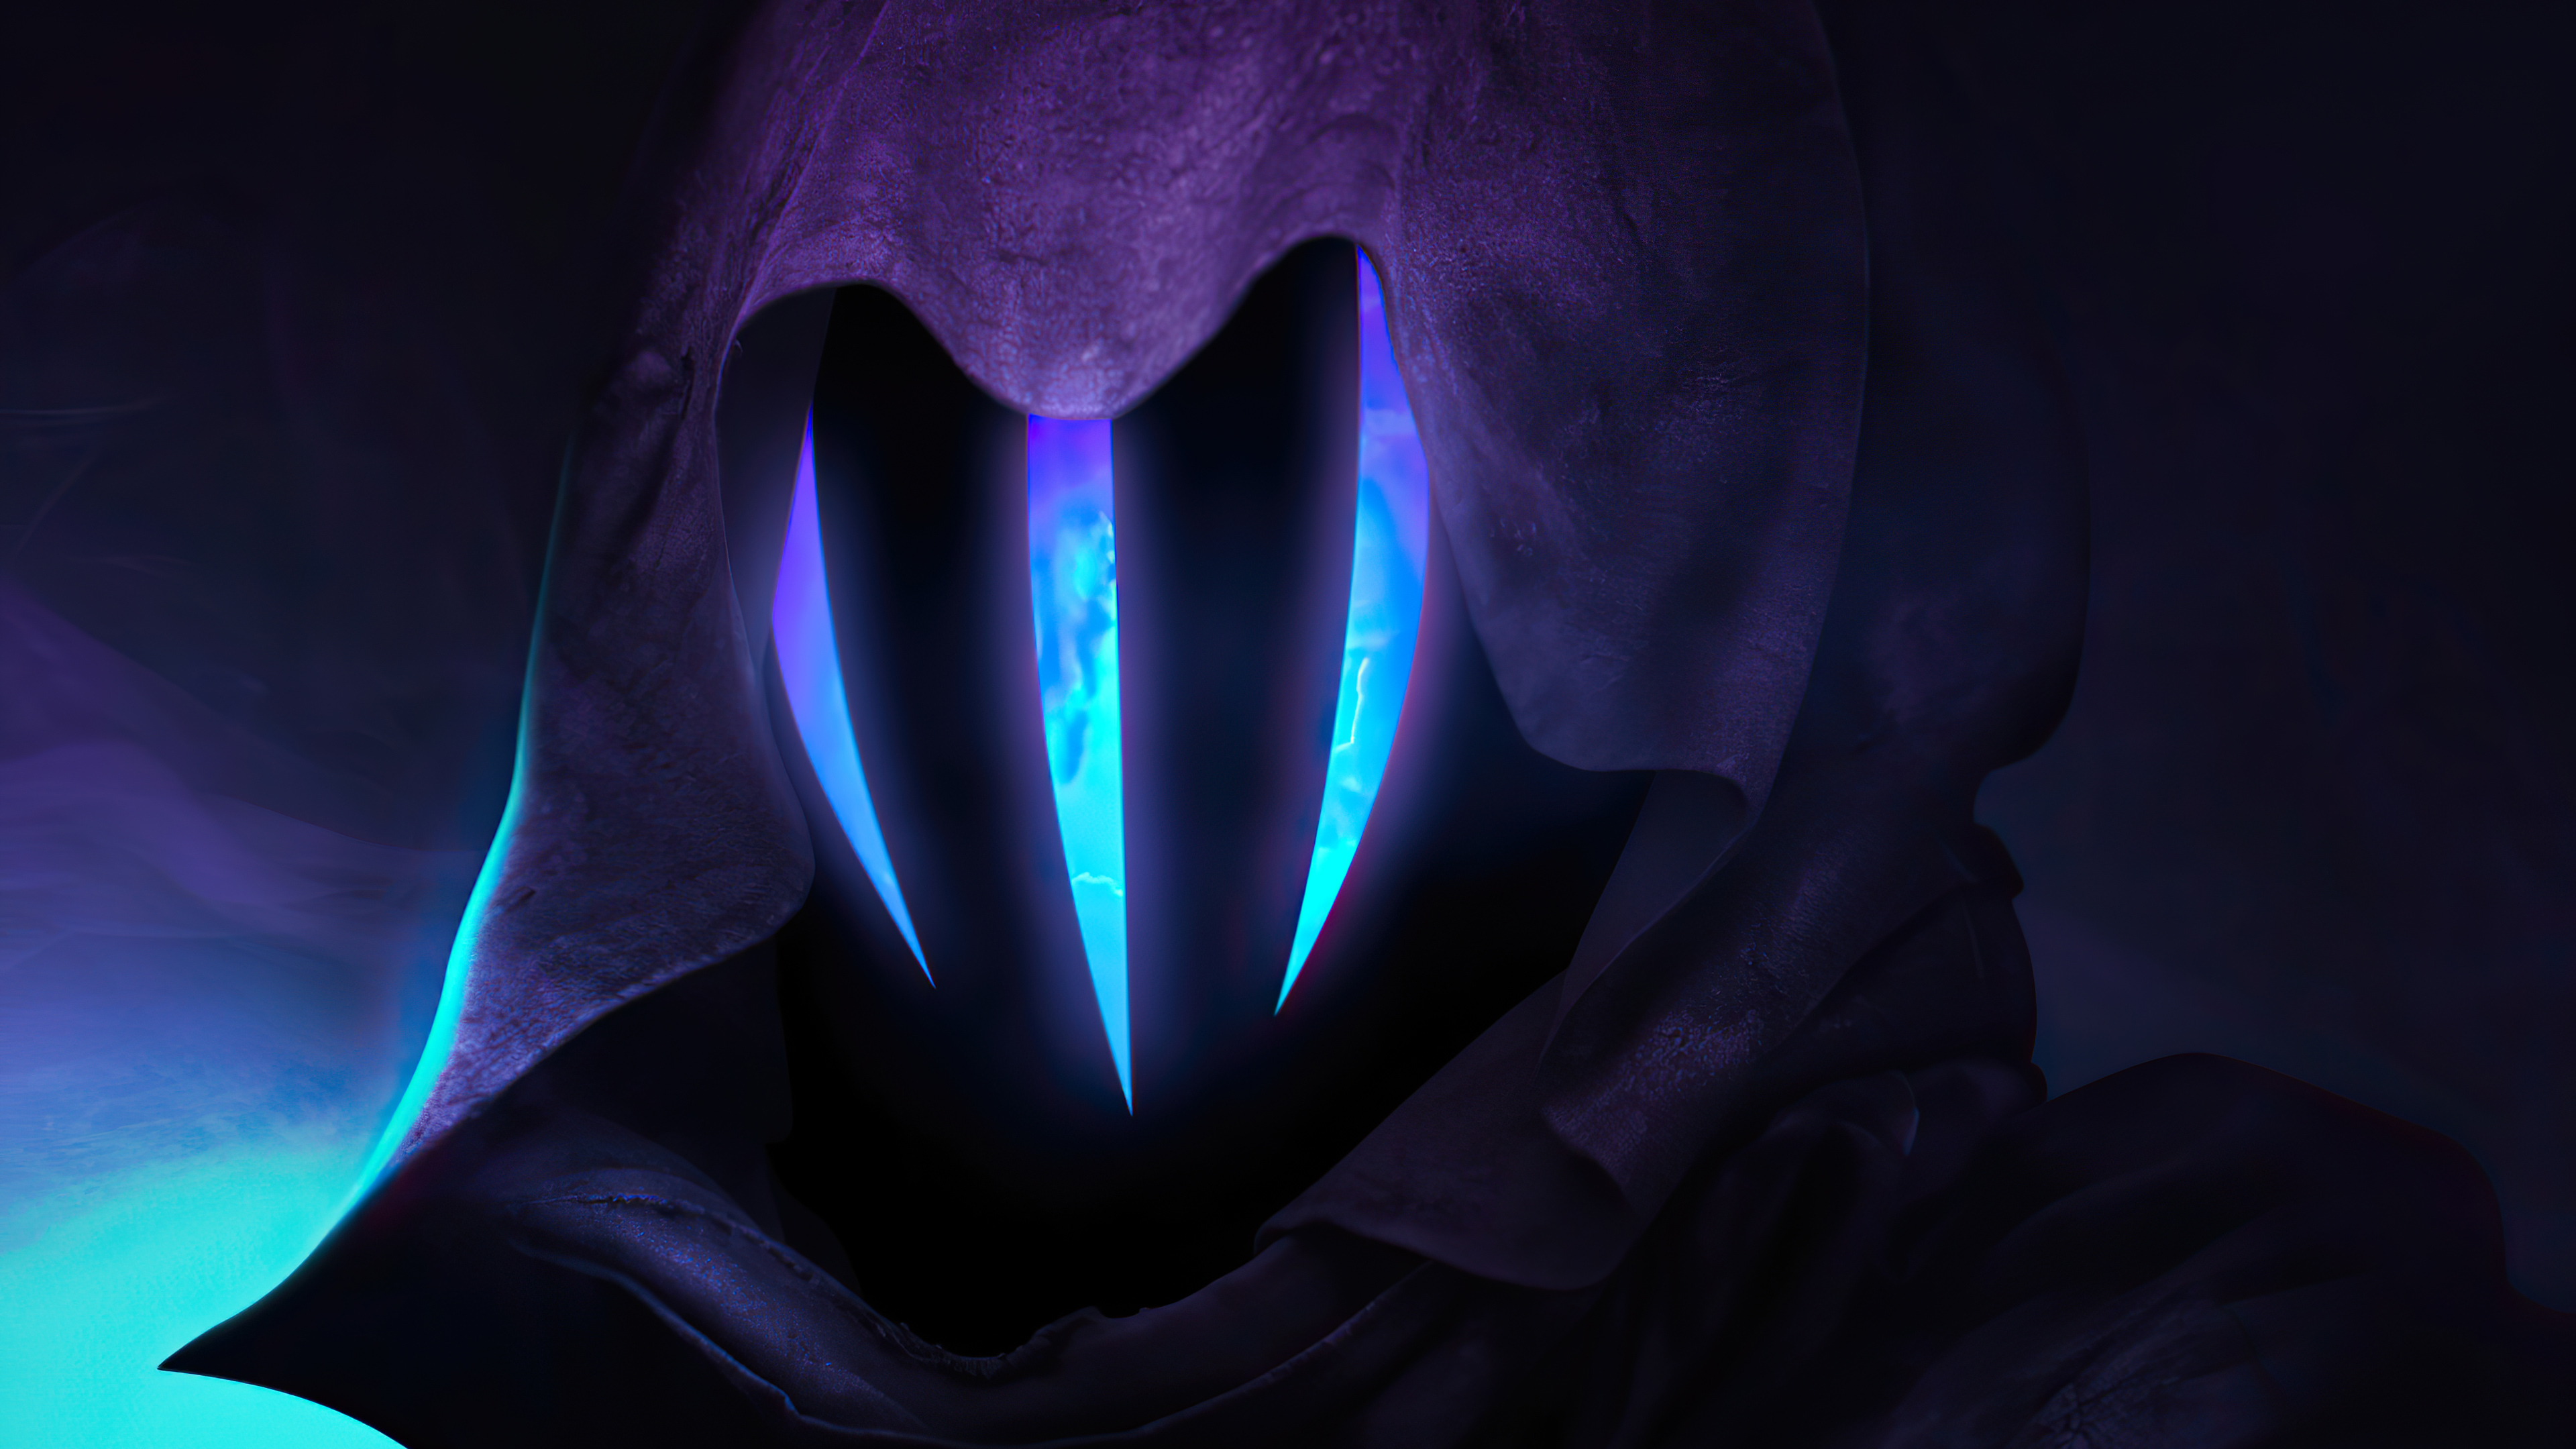 Valorant Omen 4k Hd Games 4k Wallpapers Images Backgrounds Photos And Pictures